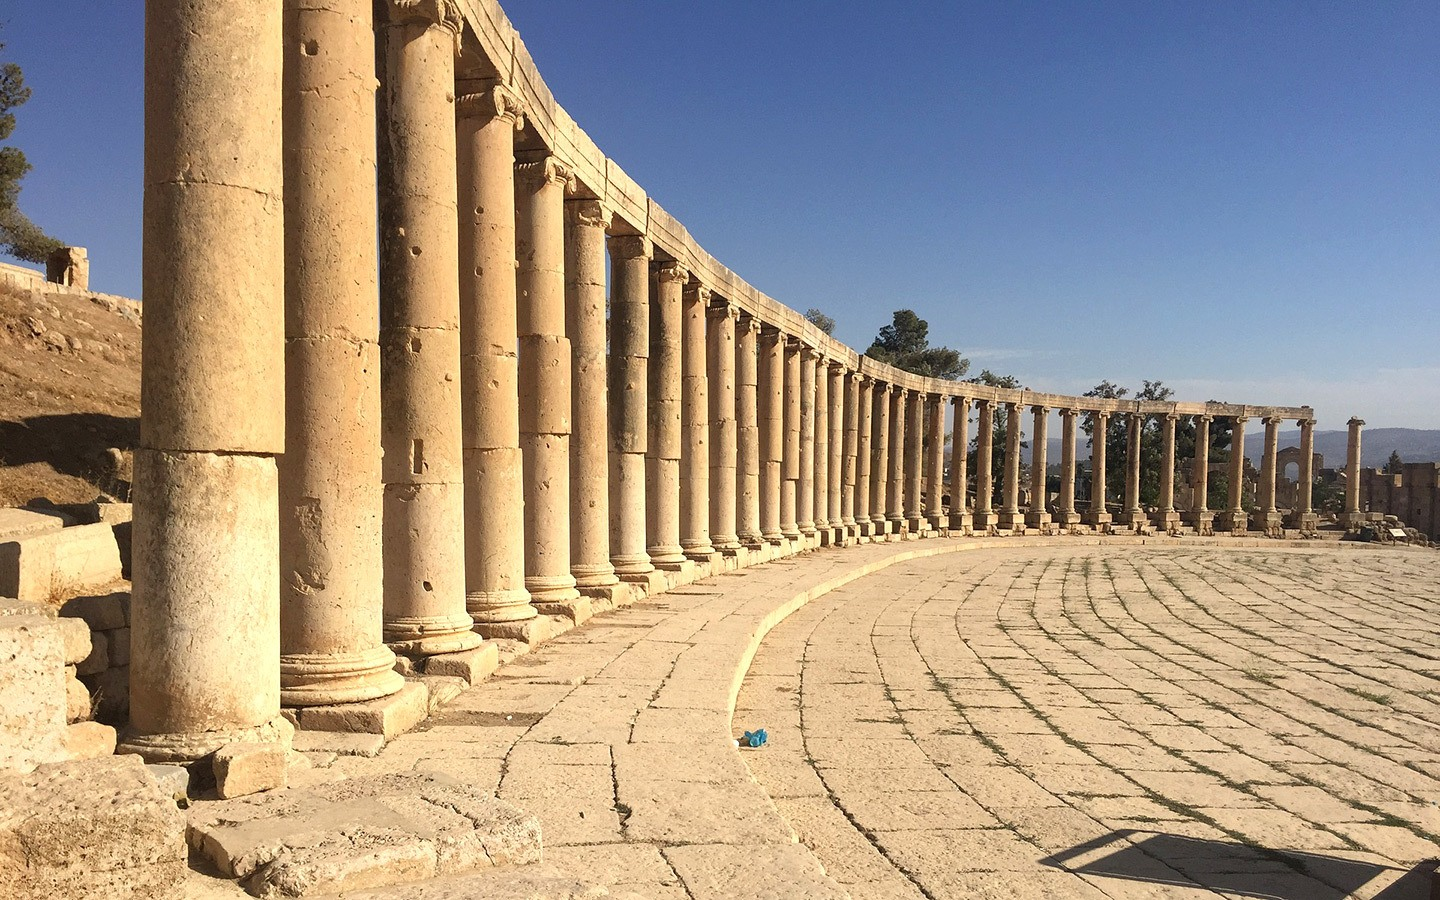 The forum in Jerash, Jordan